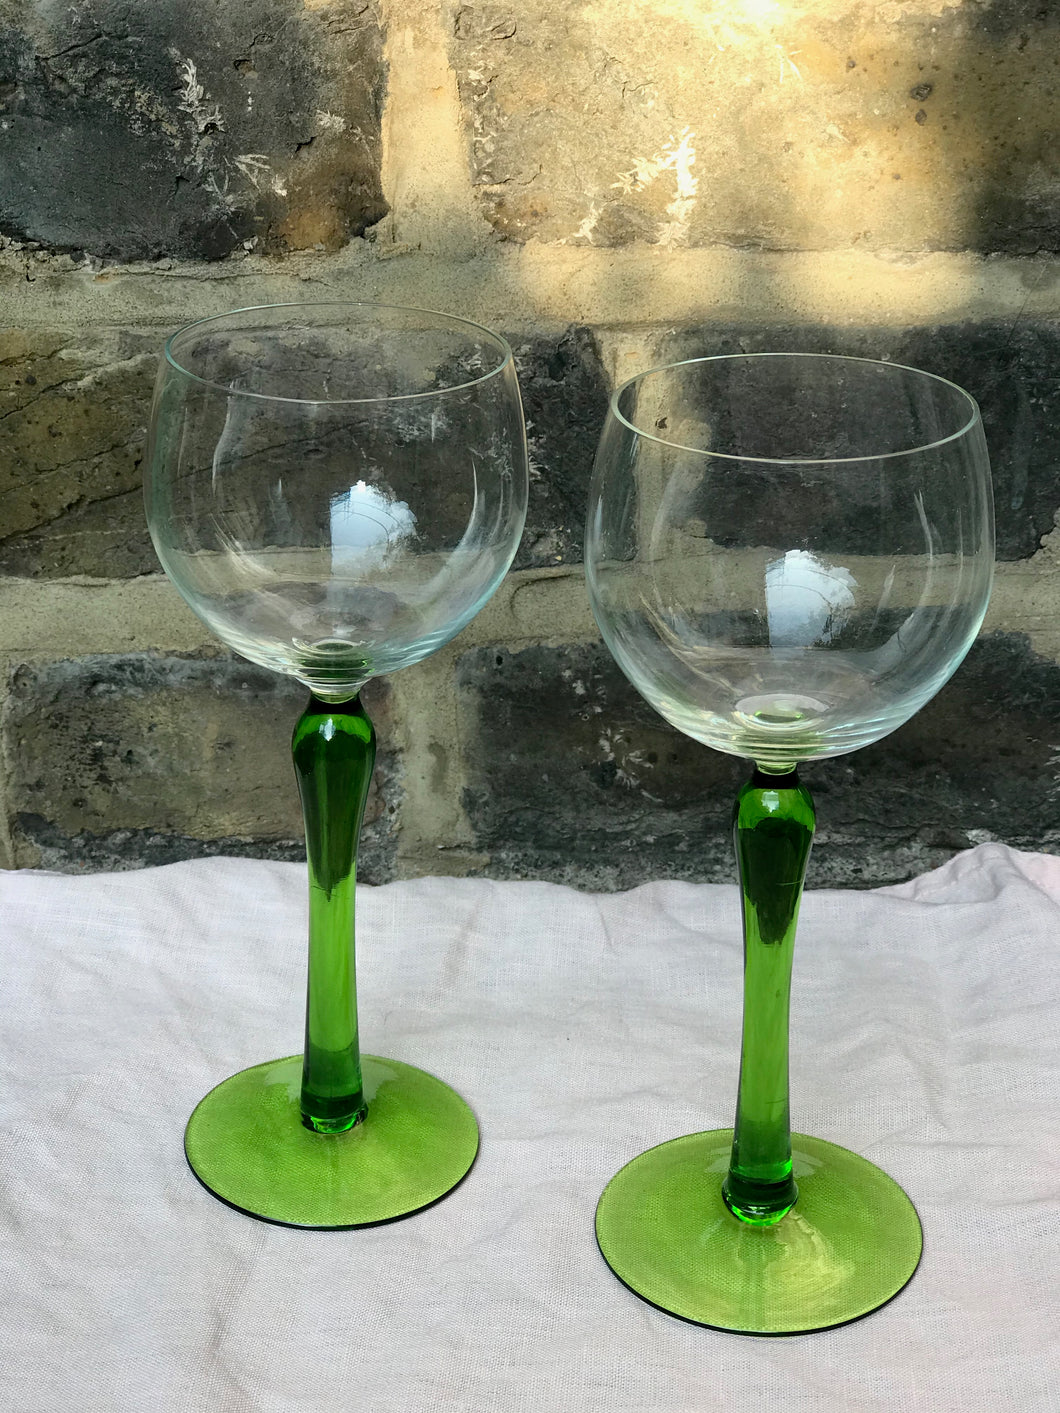 Vintage Cocktail Glasses - set of 2